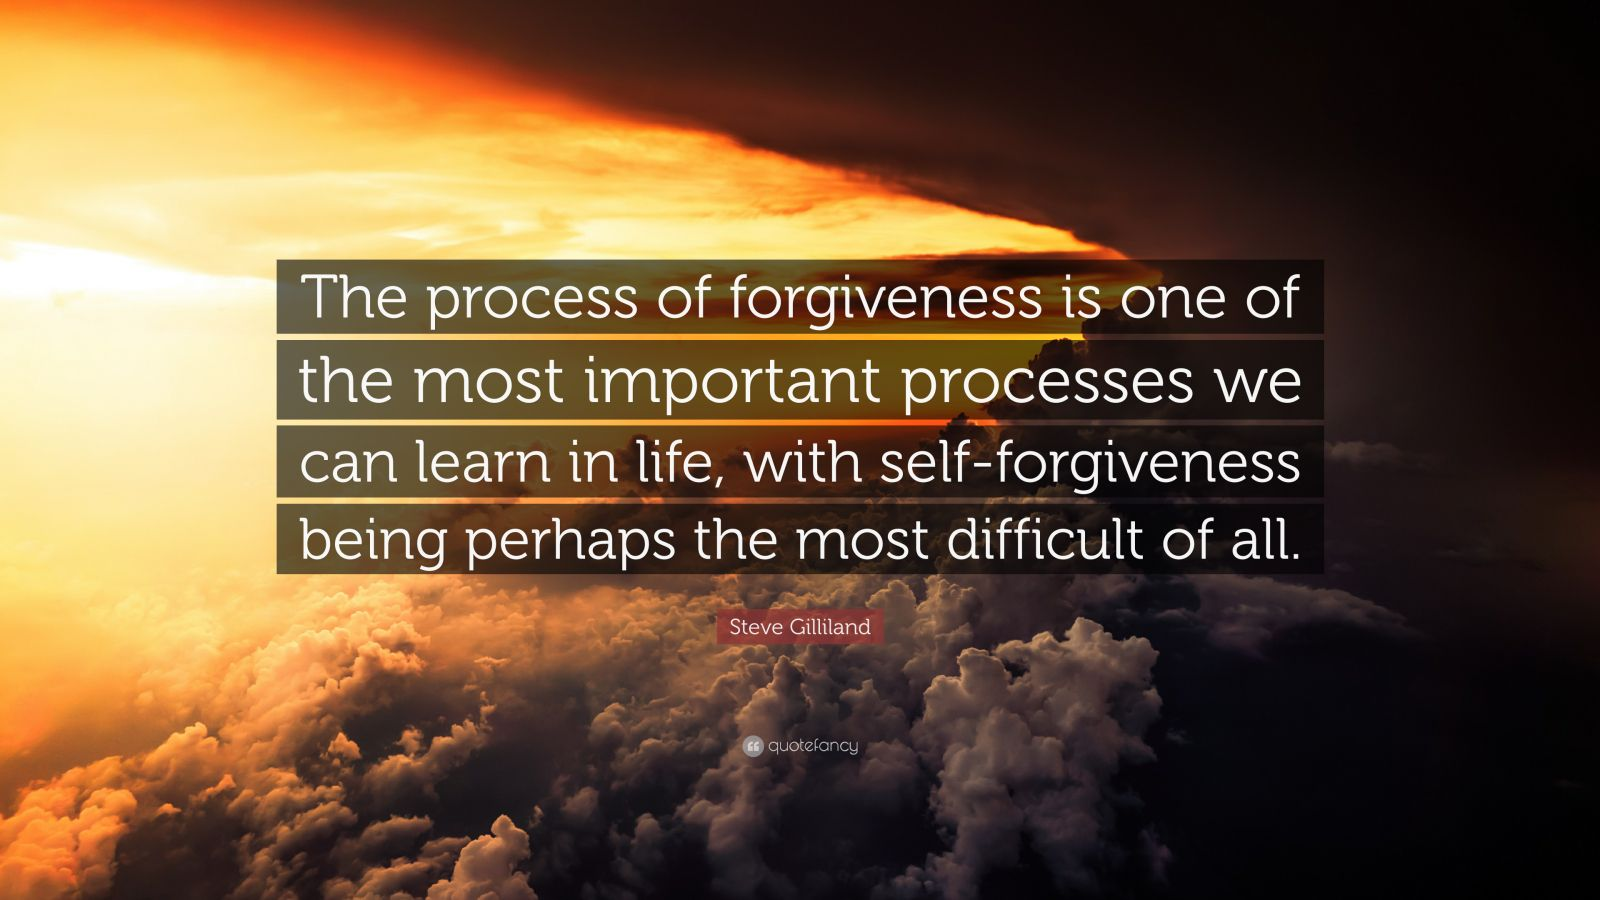 """Steve Gilliland Quote: """"The process of forgiveness is one of the most important processes we can learn in life, with self-forgiveness being perhaps the most difficult of all."""""""